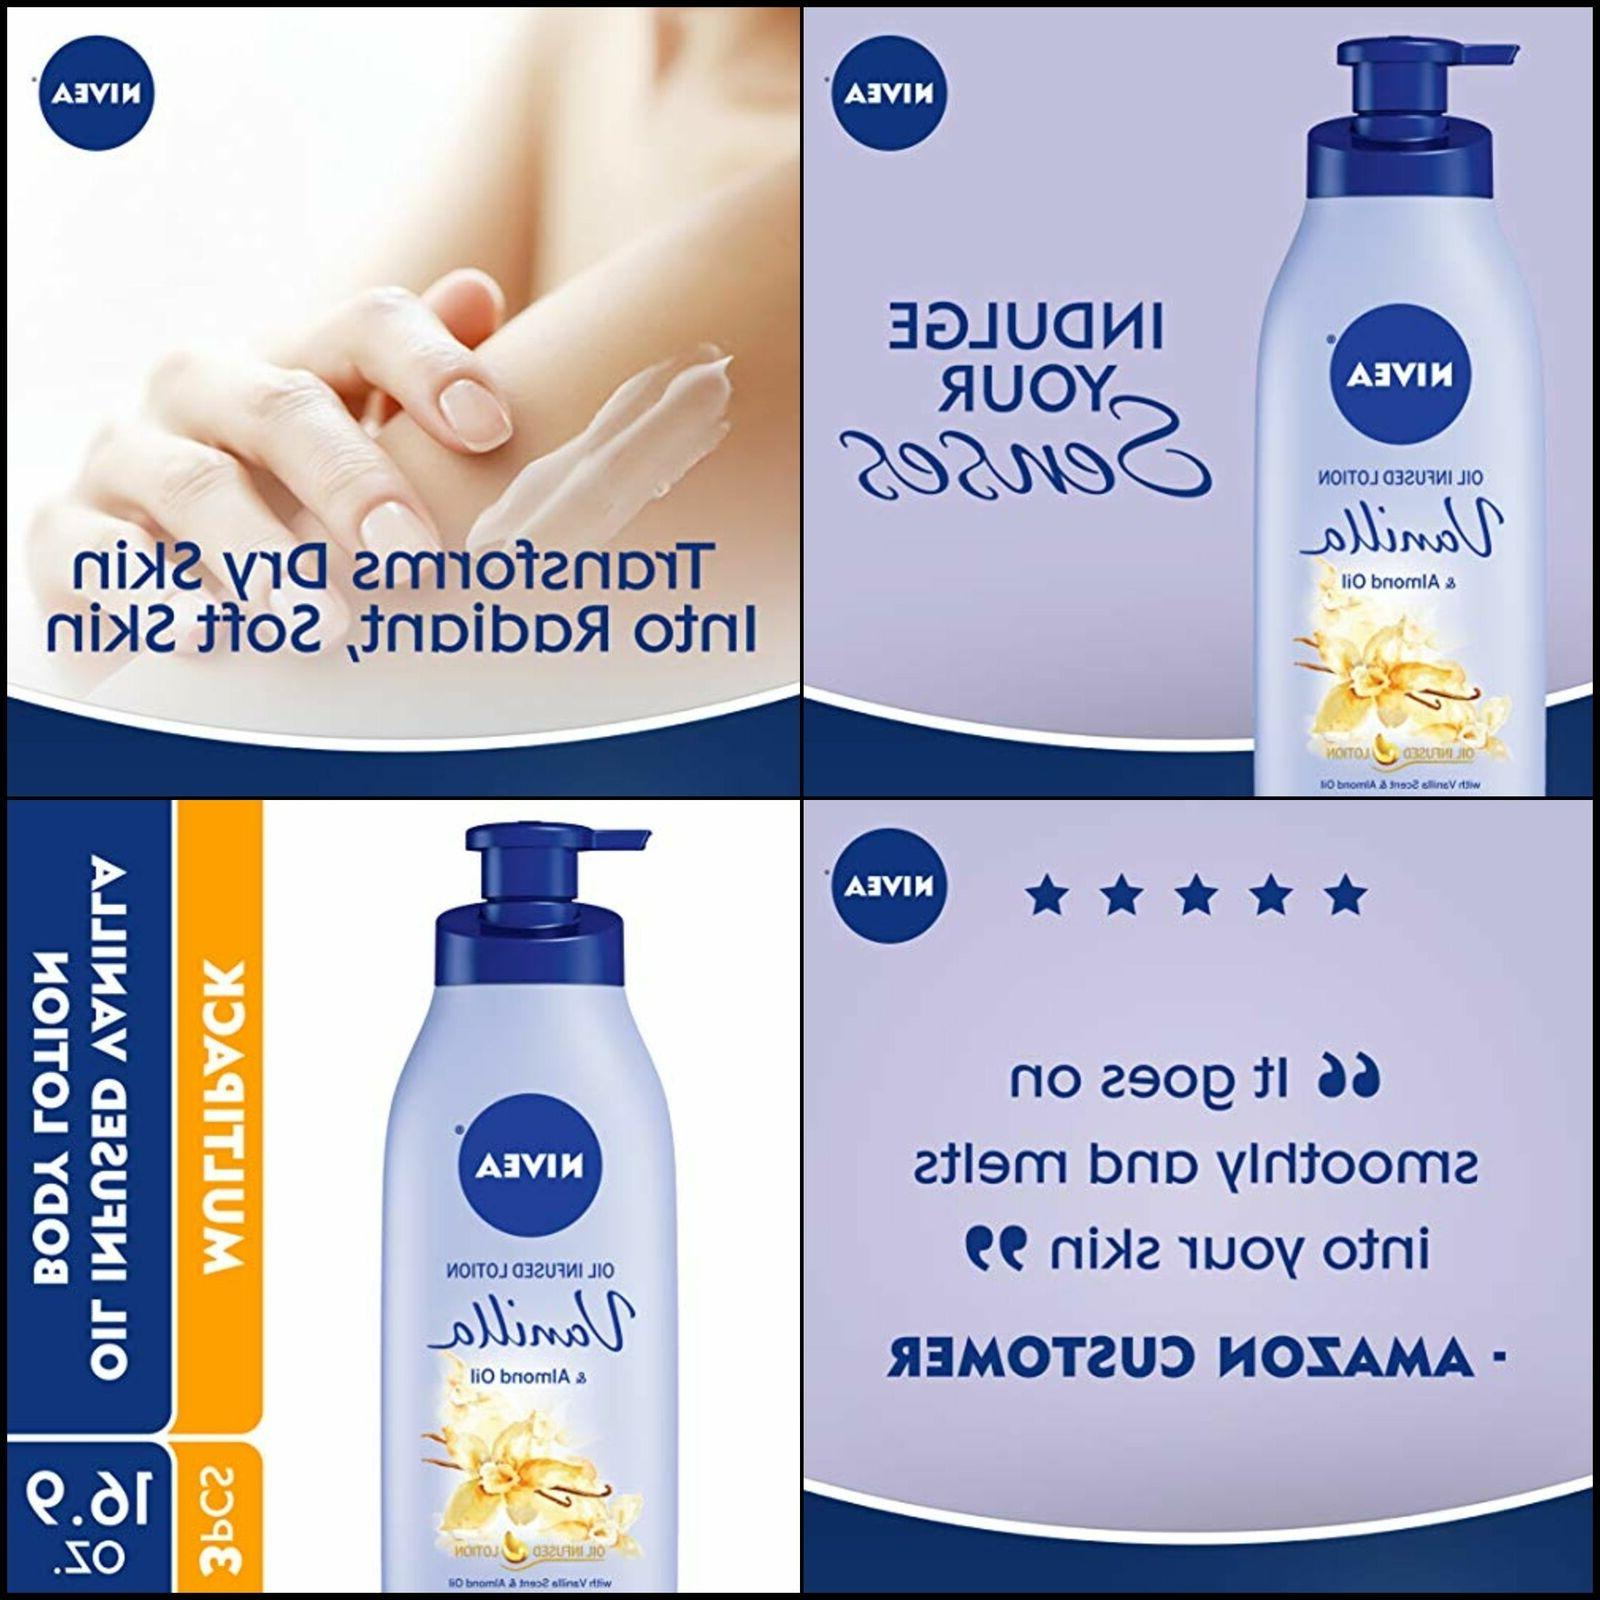 NIVEA Oil Infused Vanilla and Almond Oil Body Lotion, 16.9 F